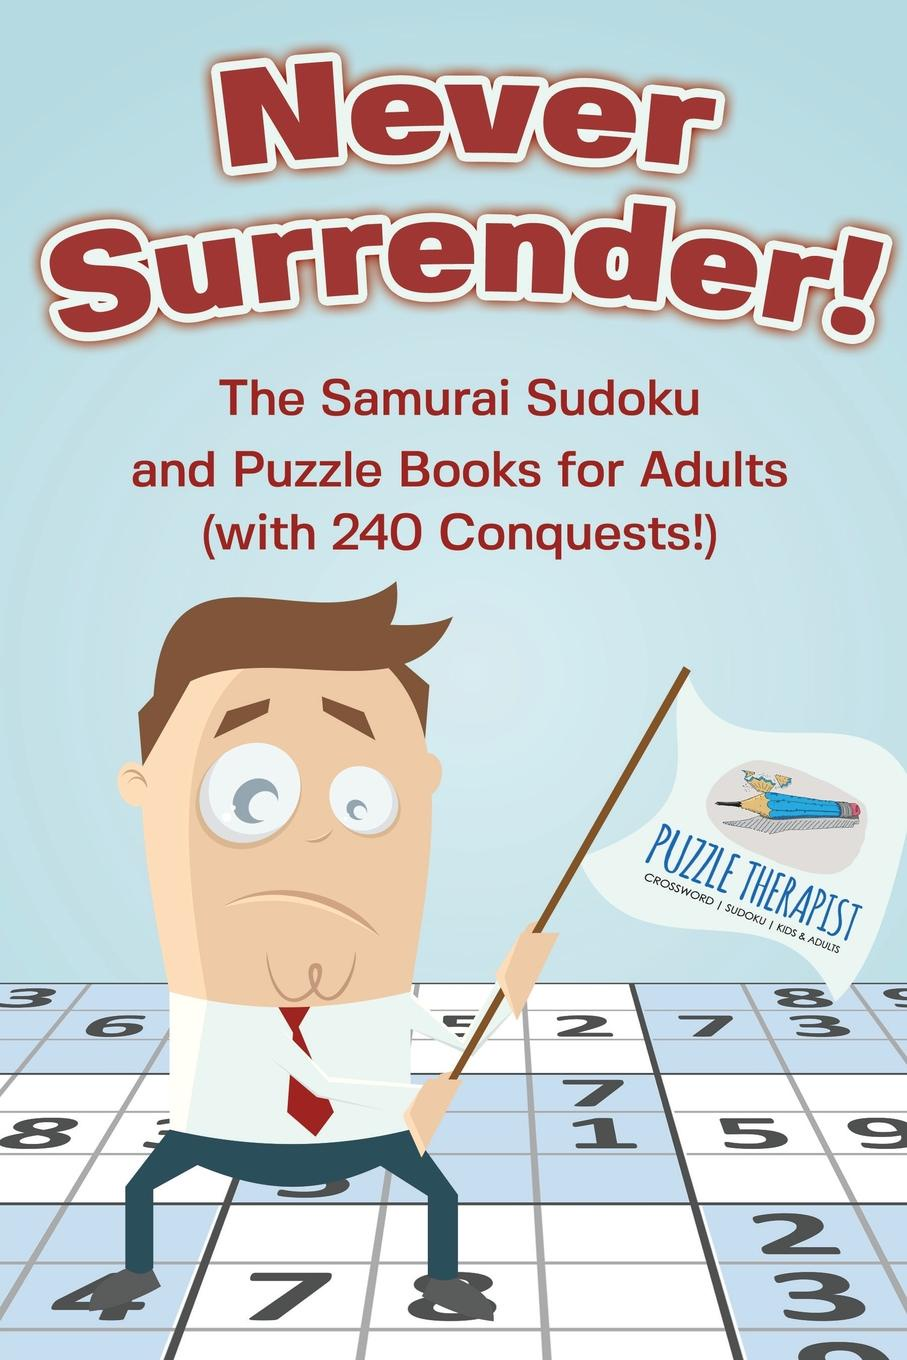 Puzzle Therapist Never Surrender! The Samurai Sudoku and Puzzle Books for Adults (with 240 Conquests!) puzzle therapist one a day sudoku for the utterly obsessed large print puzzles for adults